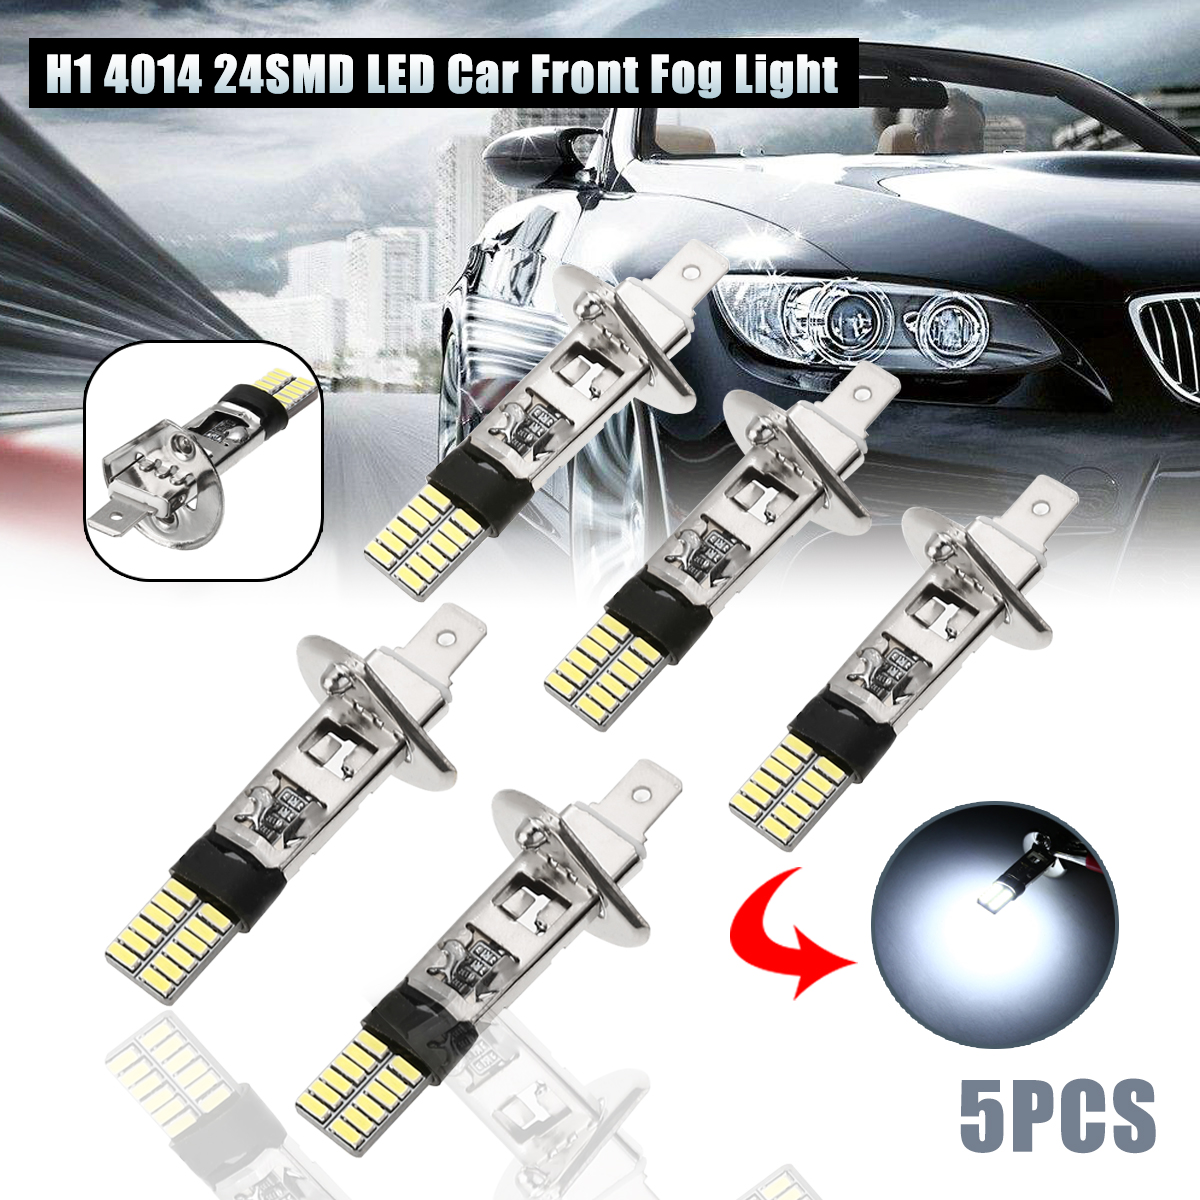 Car Light Source 5pcs <font><b>H1</b></font> 4014 24SMD <font><b>LED</b></font> Car Front Fog Light Driving <font><b>Lamp</b></font> <font><b>LED</b></font> Bulb White Canbus Error Free Mayitr image